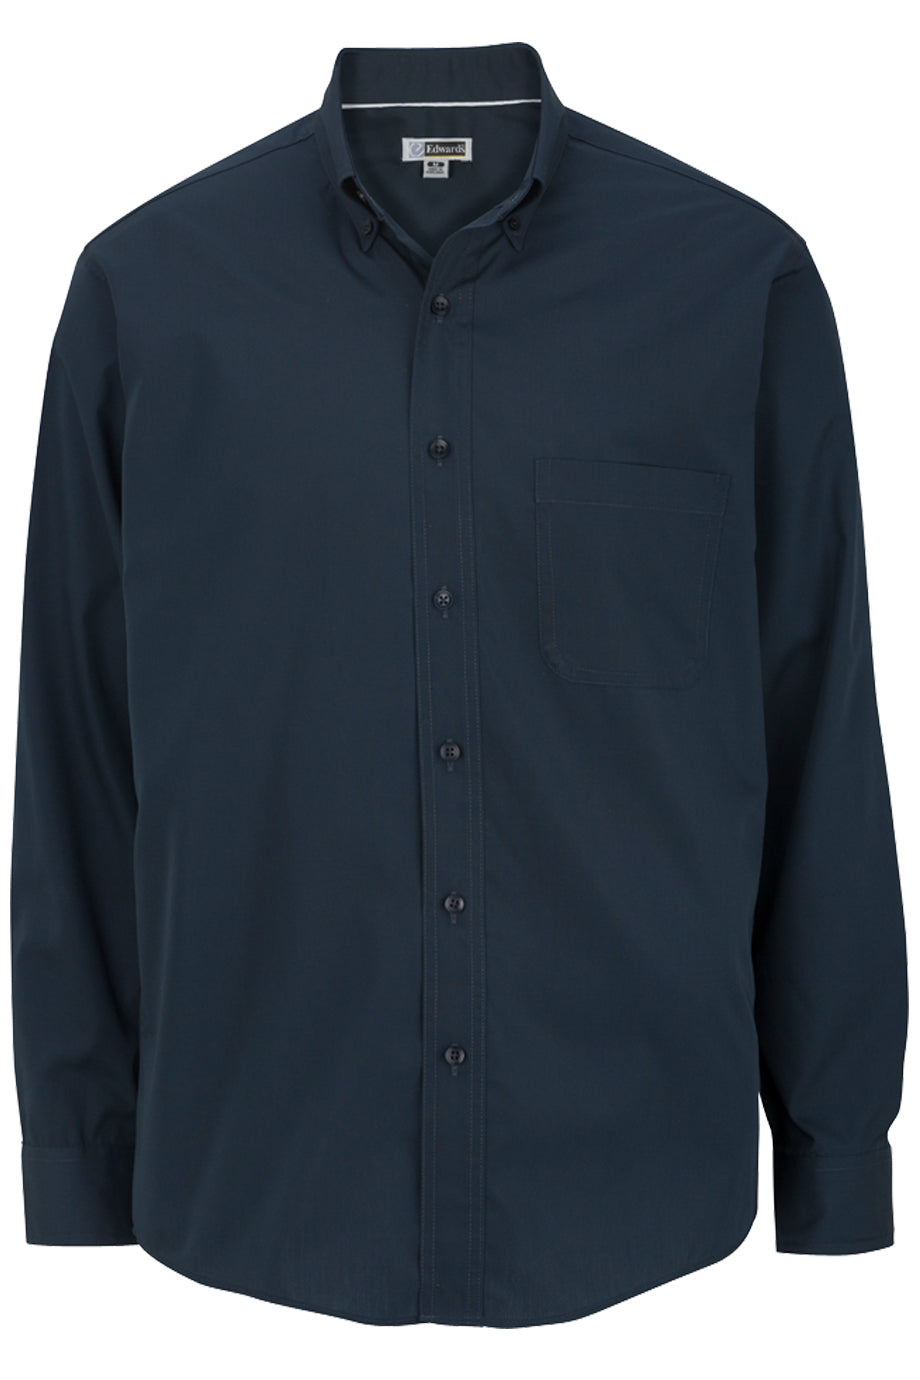 Edwards Mens Lightweight Long Sleeve Poplin Shirt